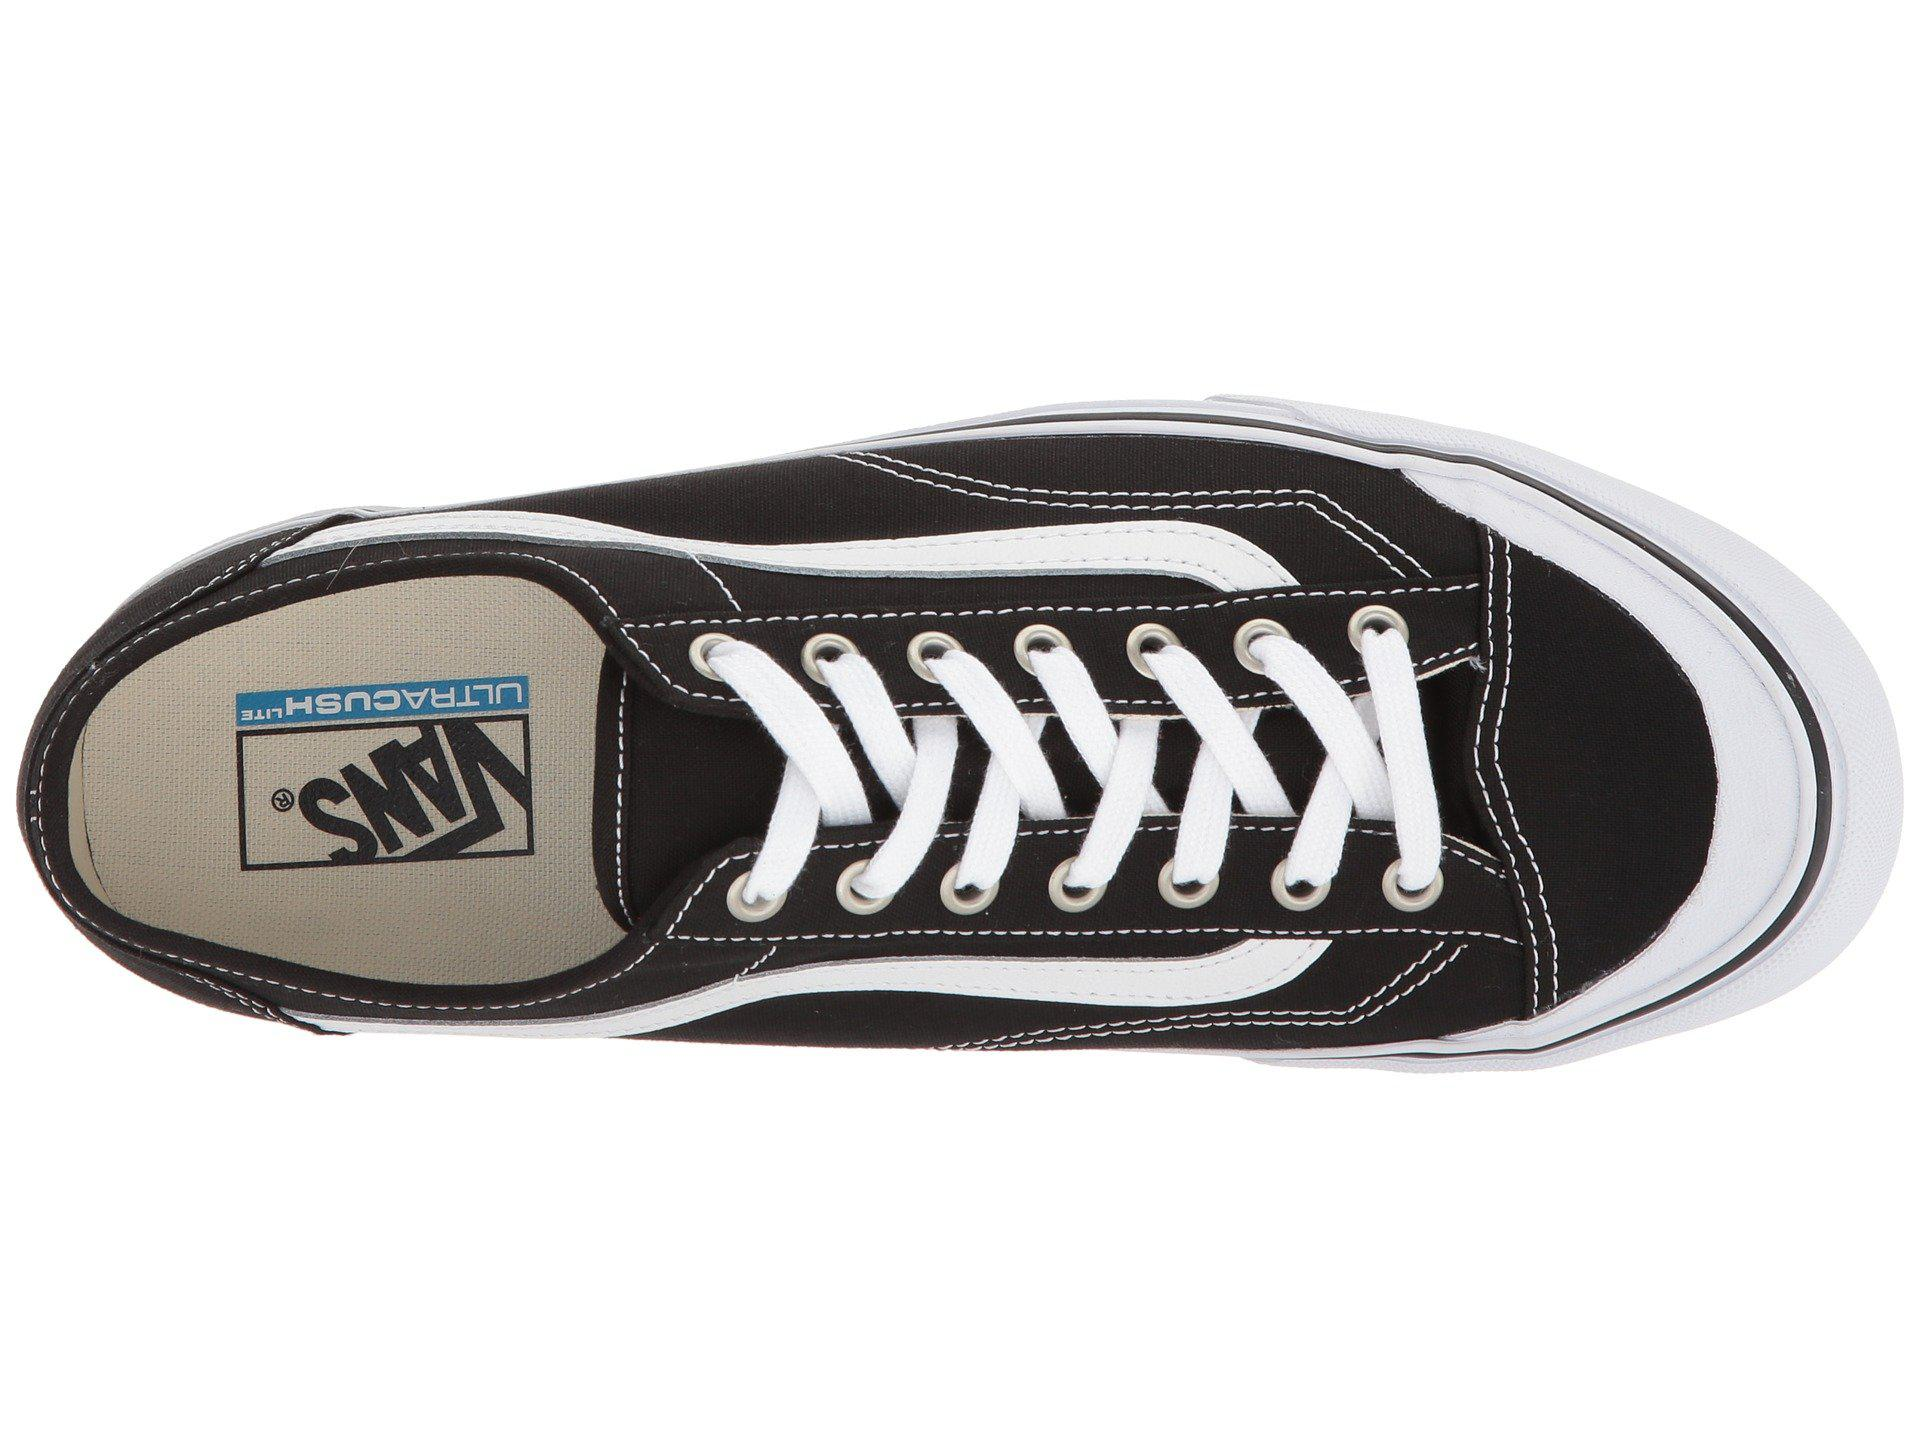 bd11ae0c39a Vans - Style 36 Decon Sf (black white) Men s Skate Shoes for Men. View  fullscreen